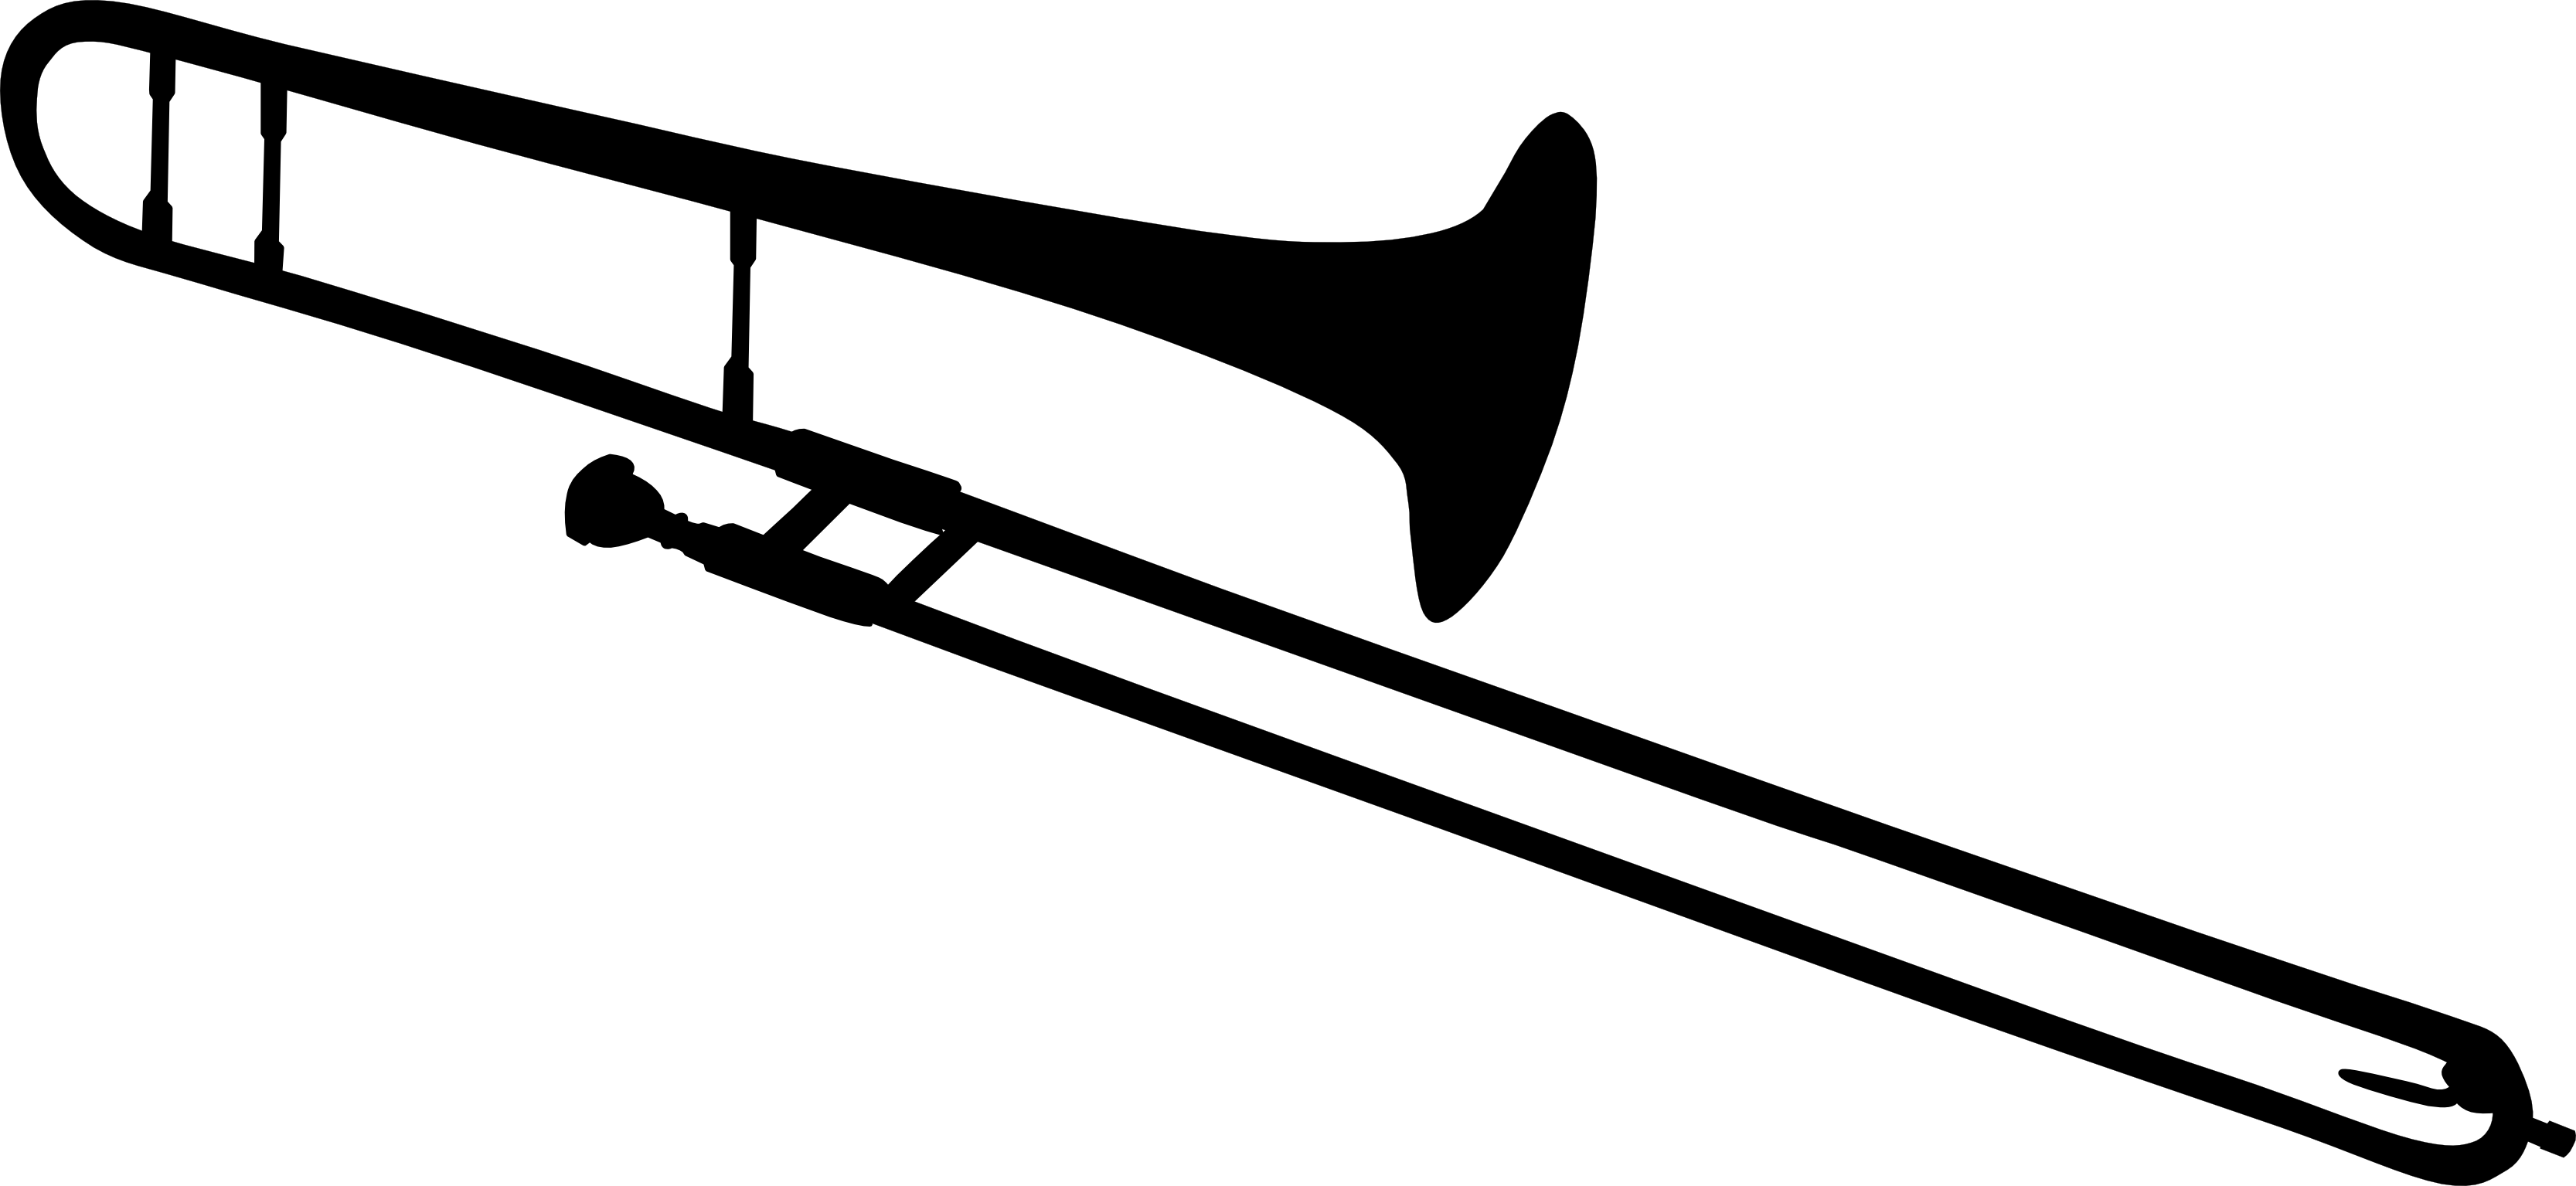 51 images of Trombone Clip Art . You can use these free cliparts for ...